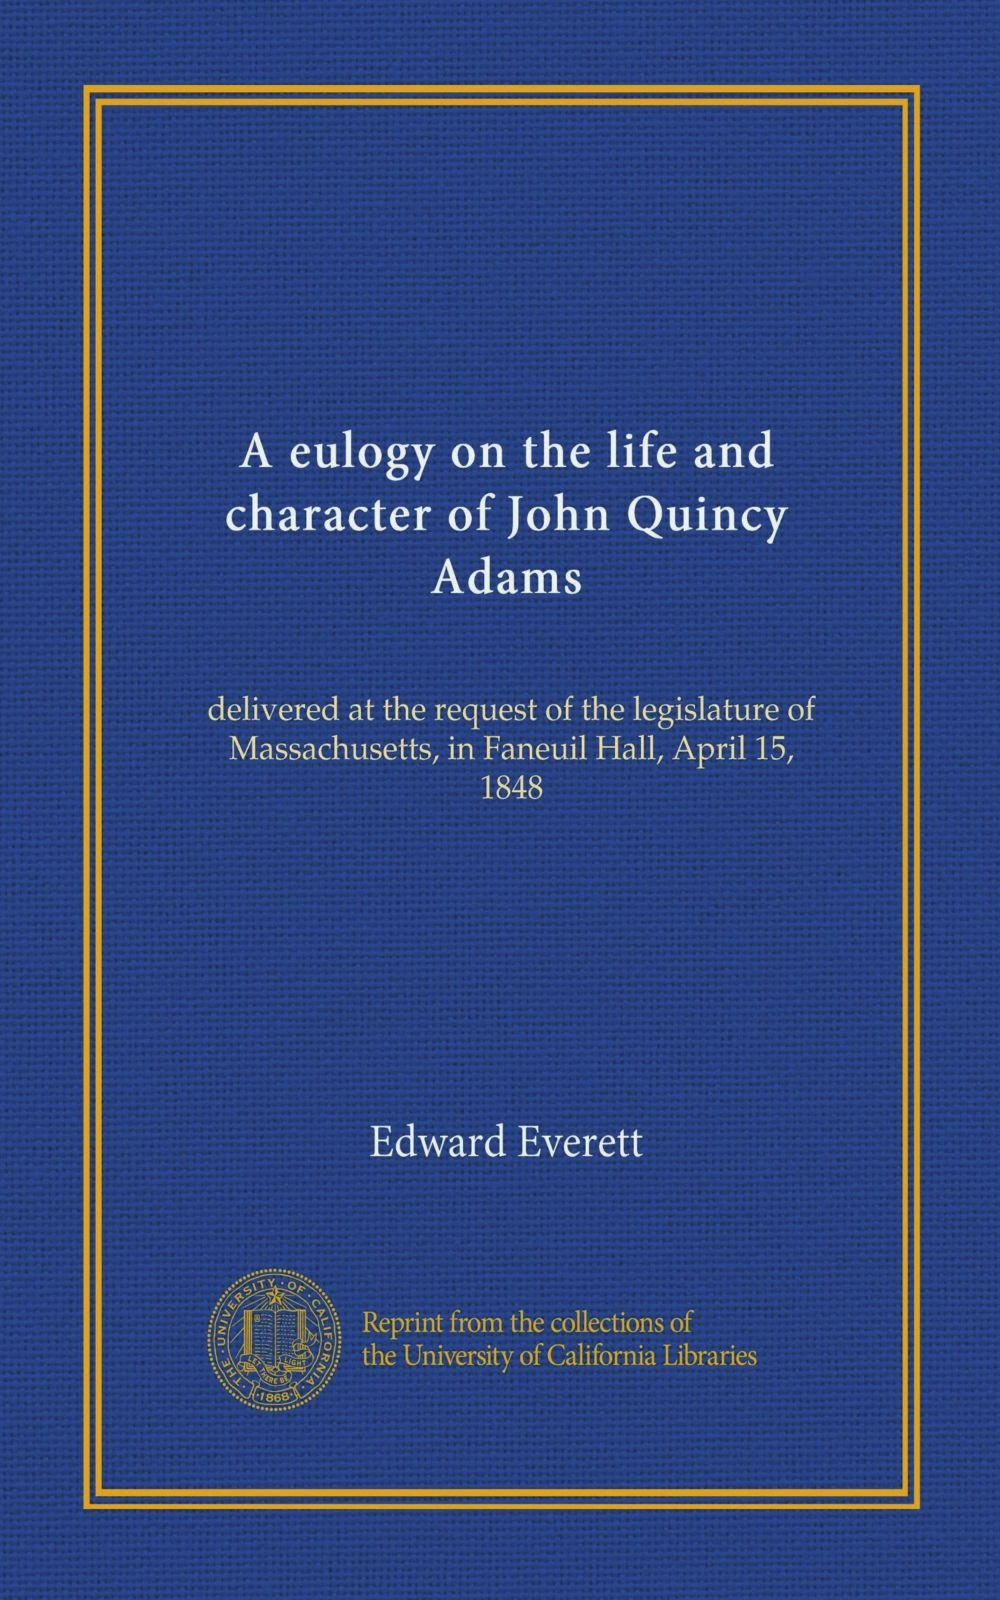 A eulogy on the life and character of John Quincy Adams: delivered at the request of the legislature of Massachusetts, in Faneuil Hall, April 15, 1848